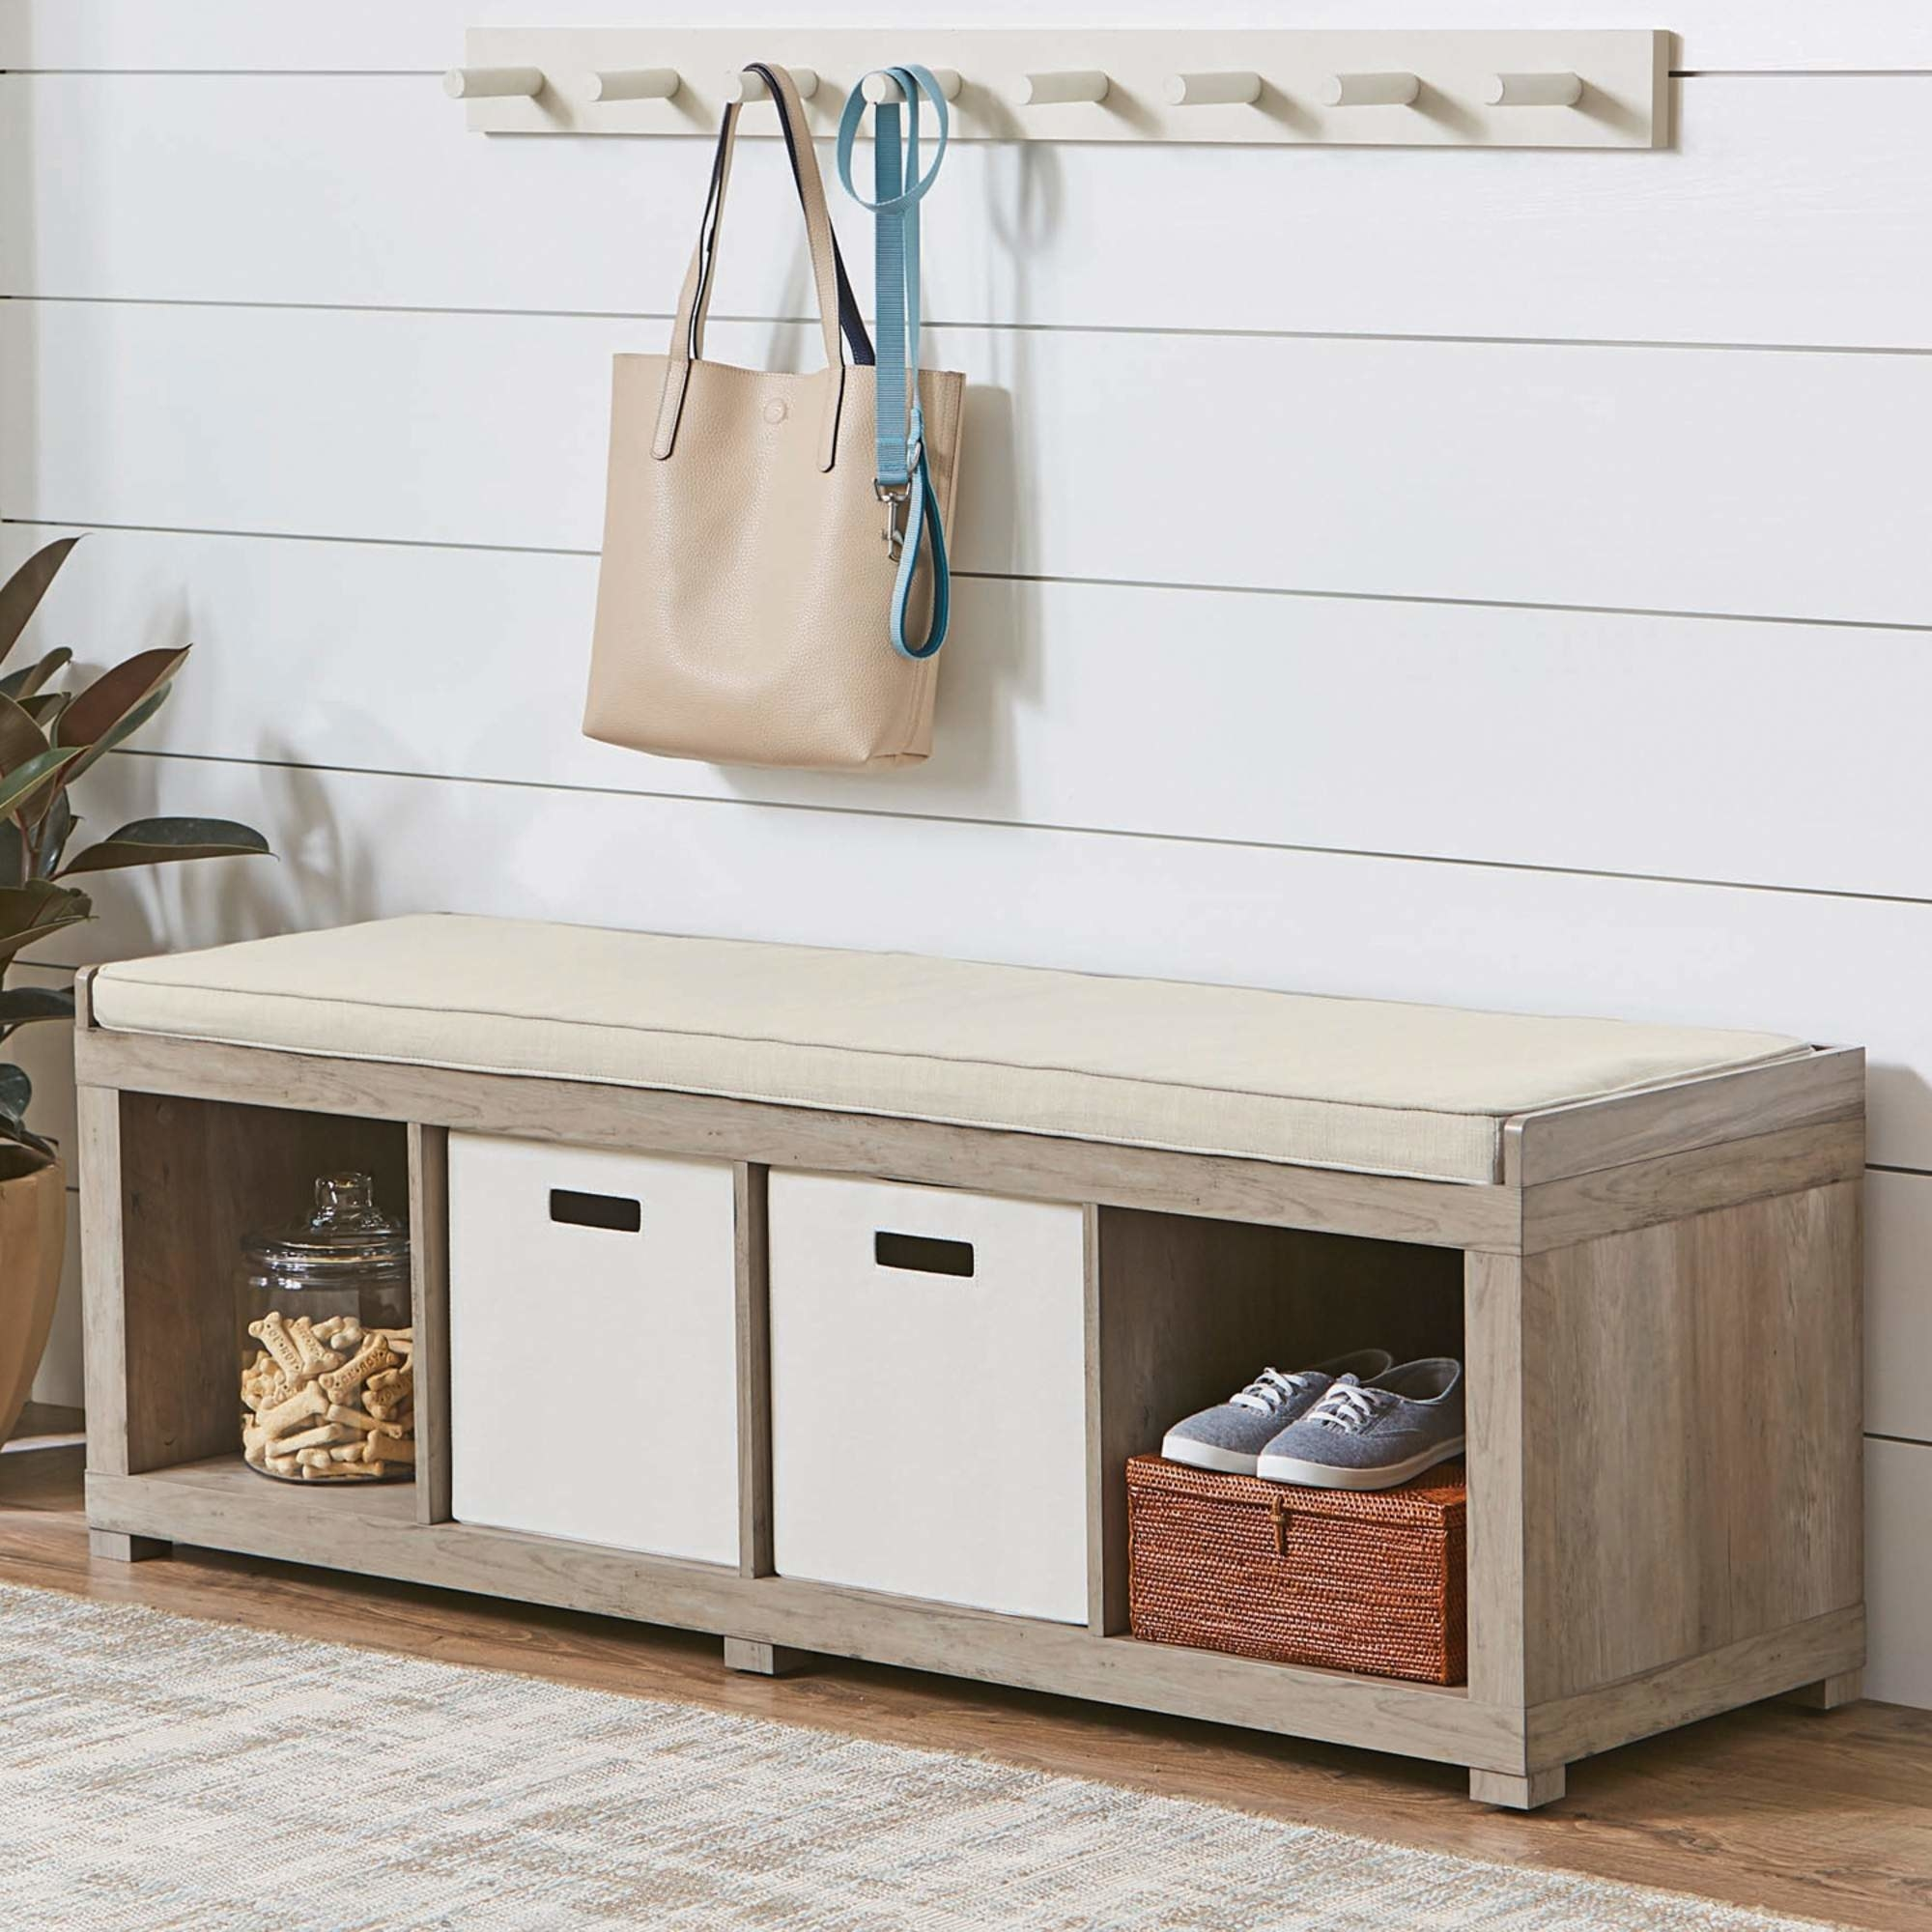 gray cushioned storage bench with cube and items stored inside